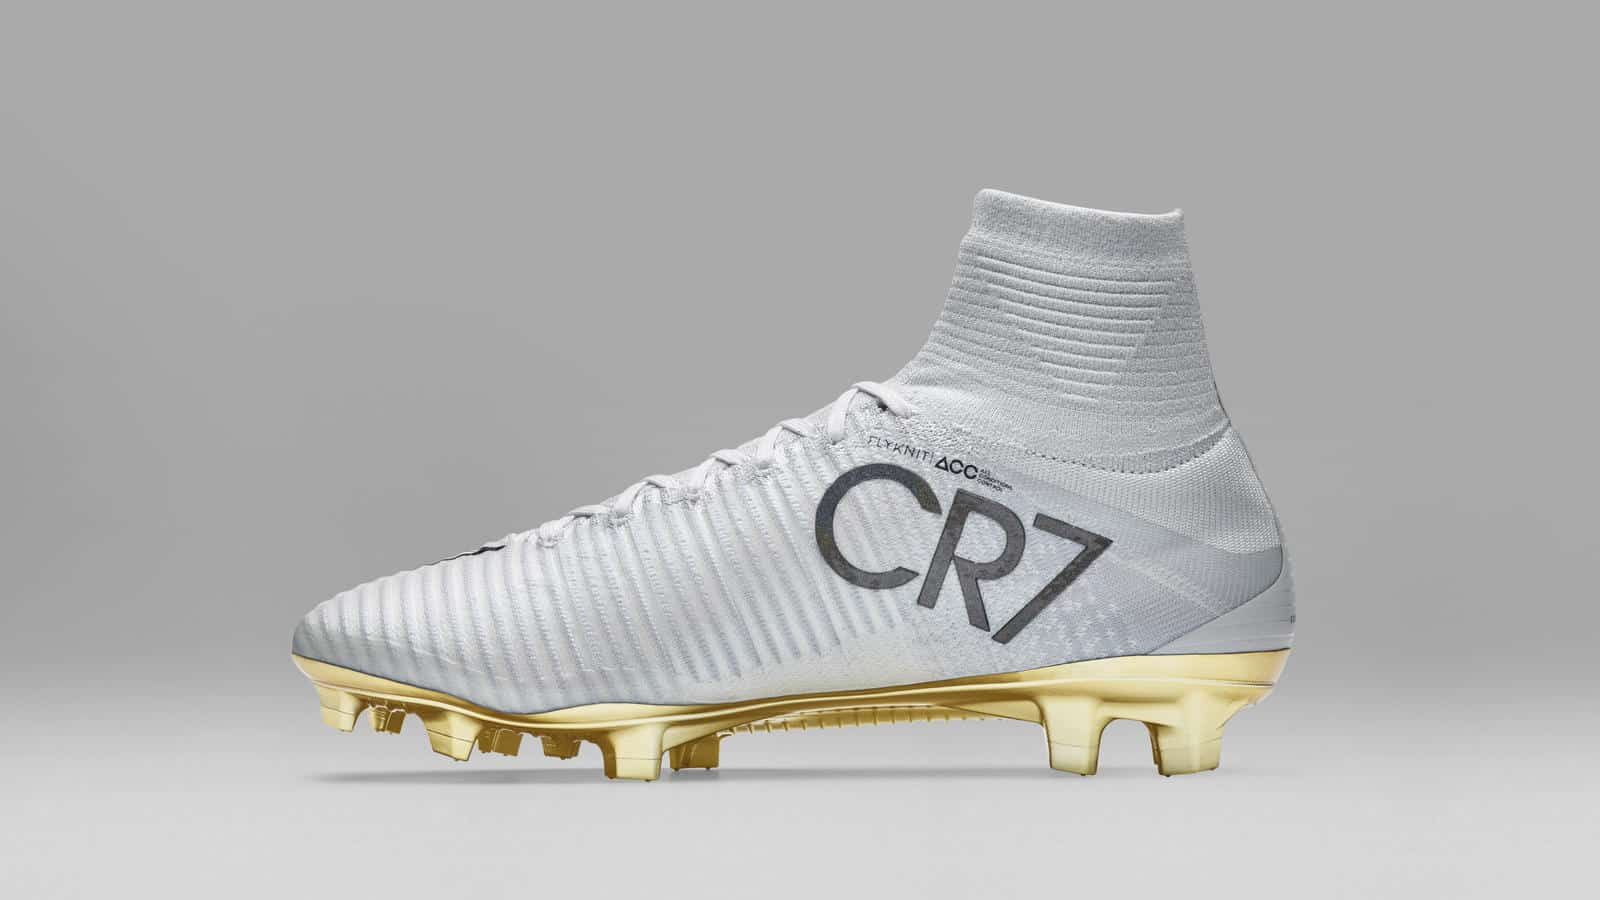 chaussure-foot-nike-mercurial-superfly-cr7-ballon-or-2016-7